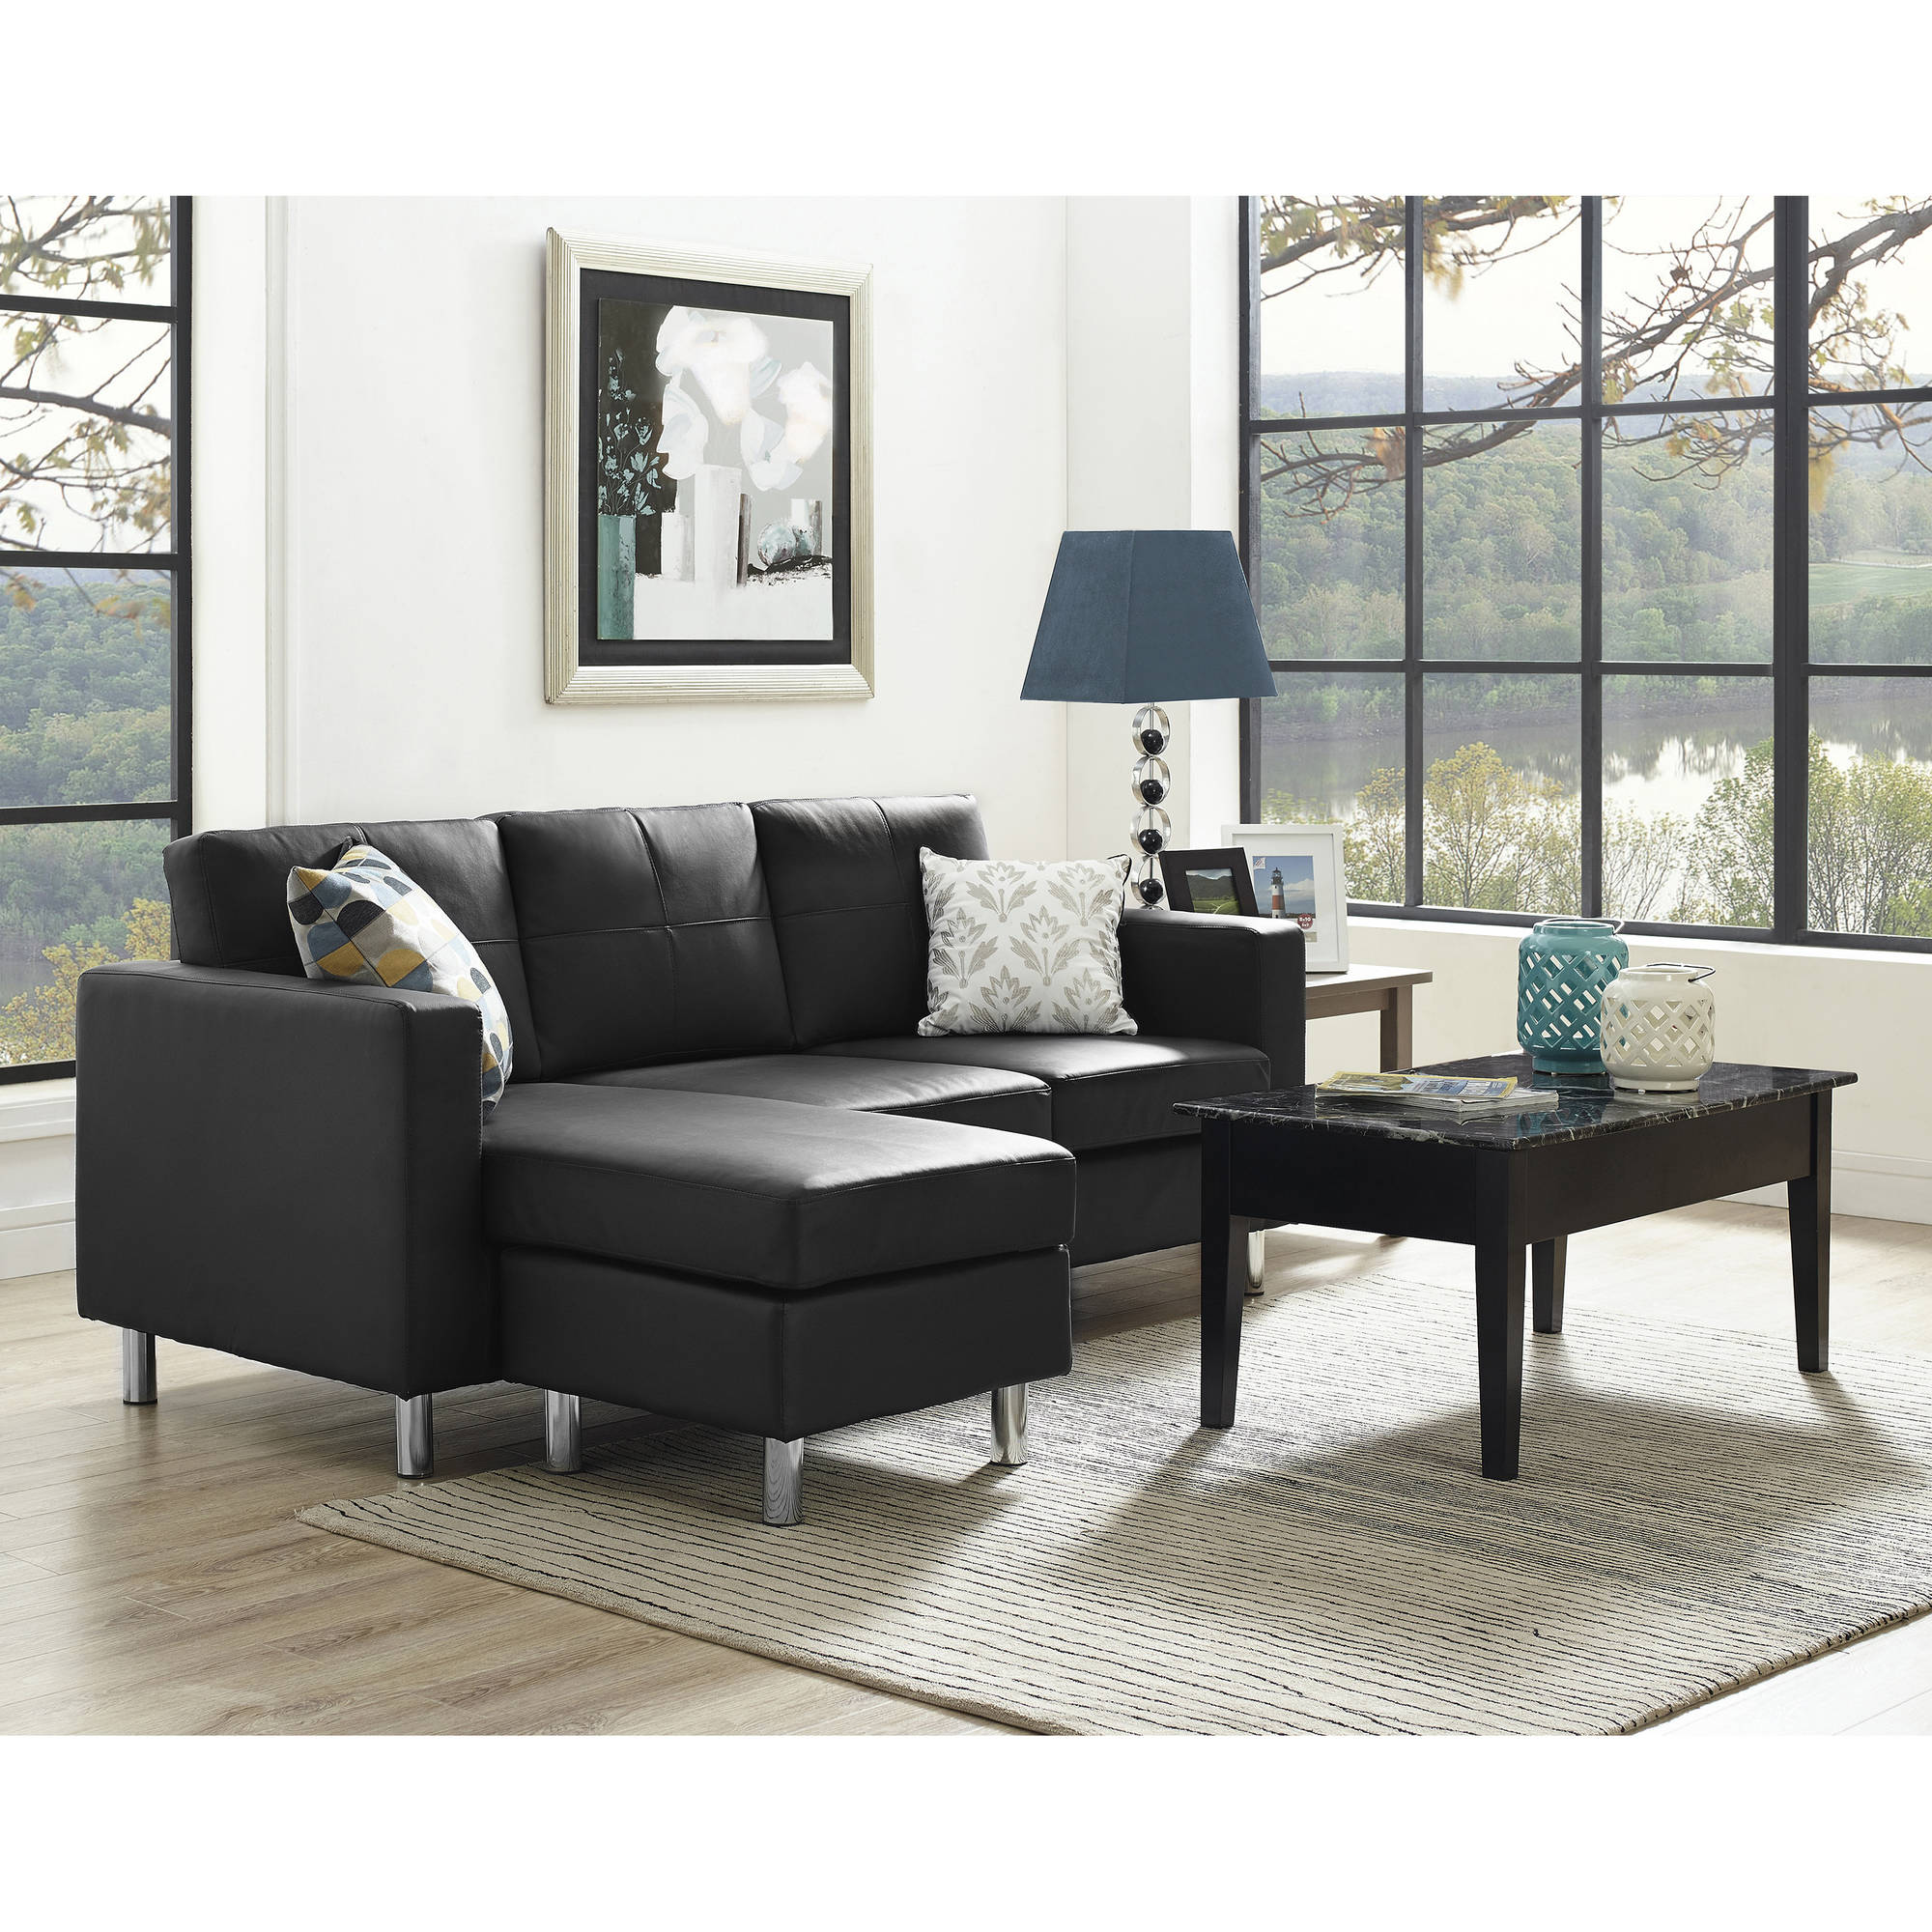 Small Sectional Couch. Dorel Living Small Spaces Configurable Sectional Sofa,  Multiple Colors Couch